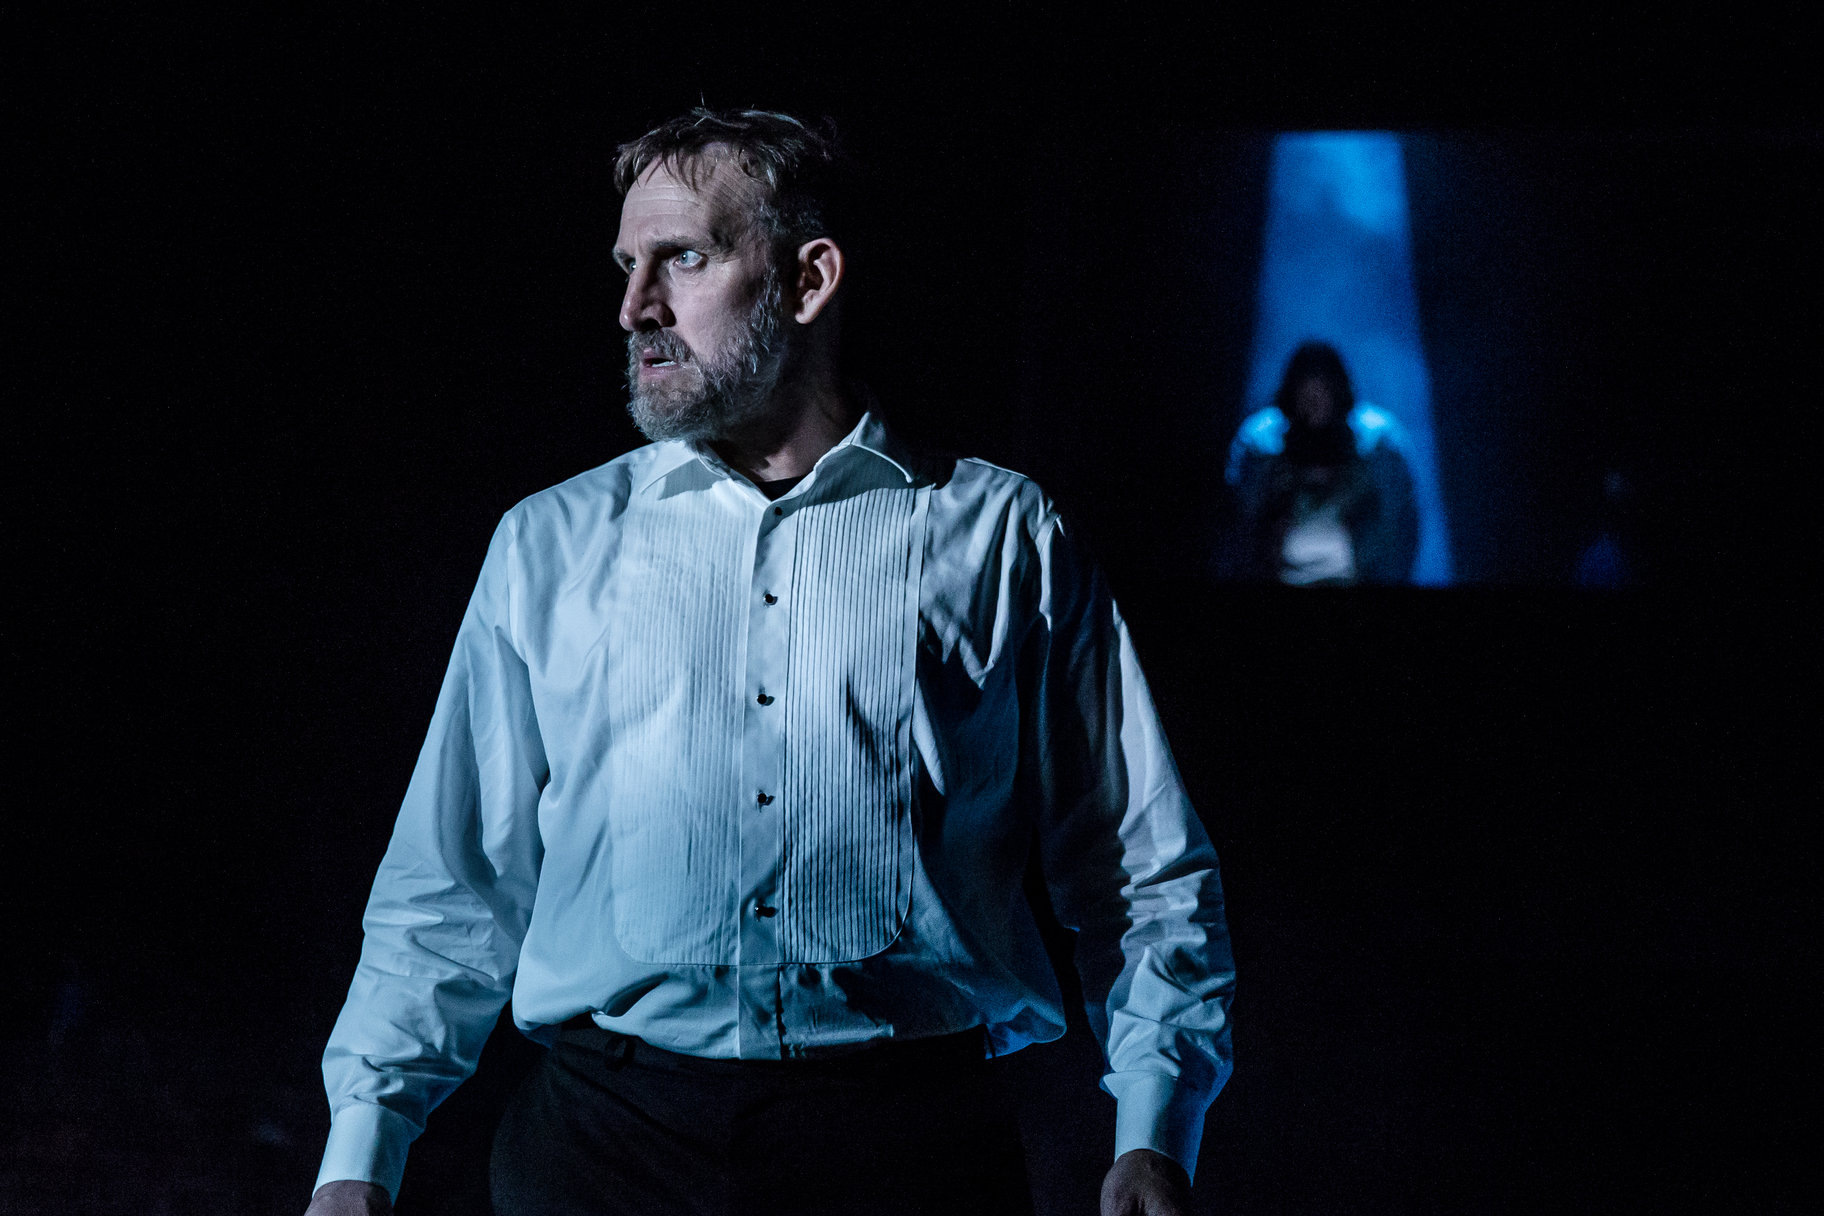 Christopher Eccleston as Macbeth and Raphael Sowole as Banquo's ghost in the 2018 production of Macbeth.